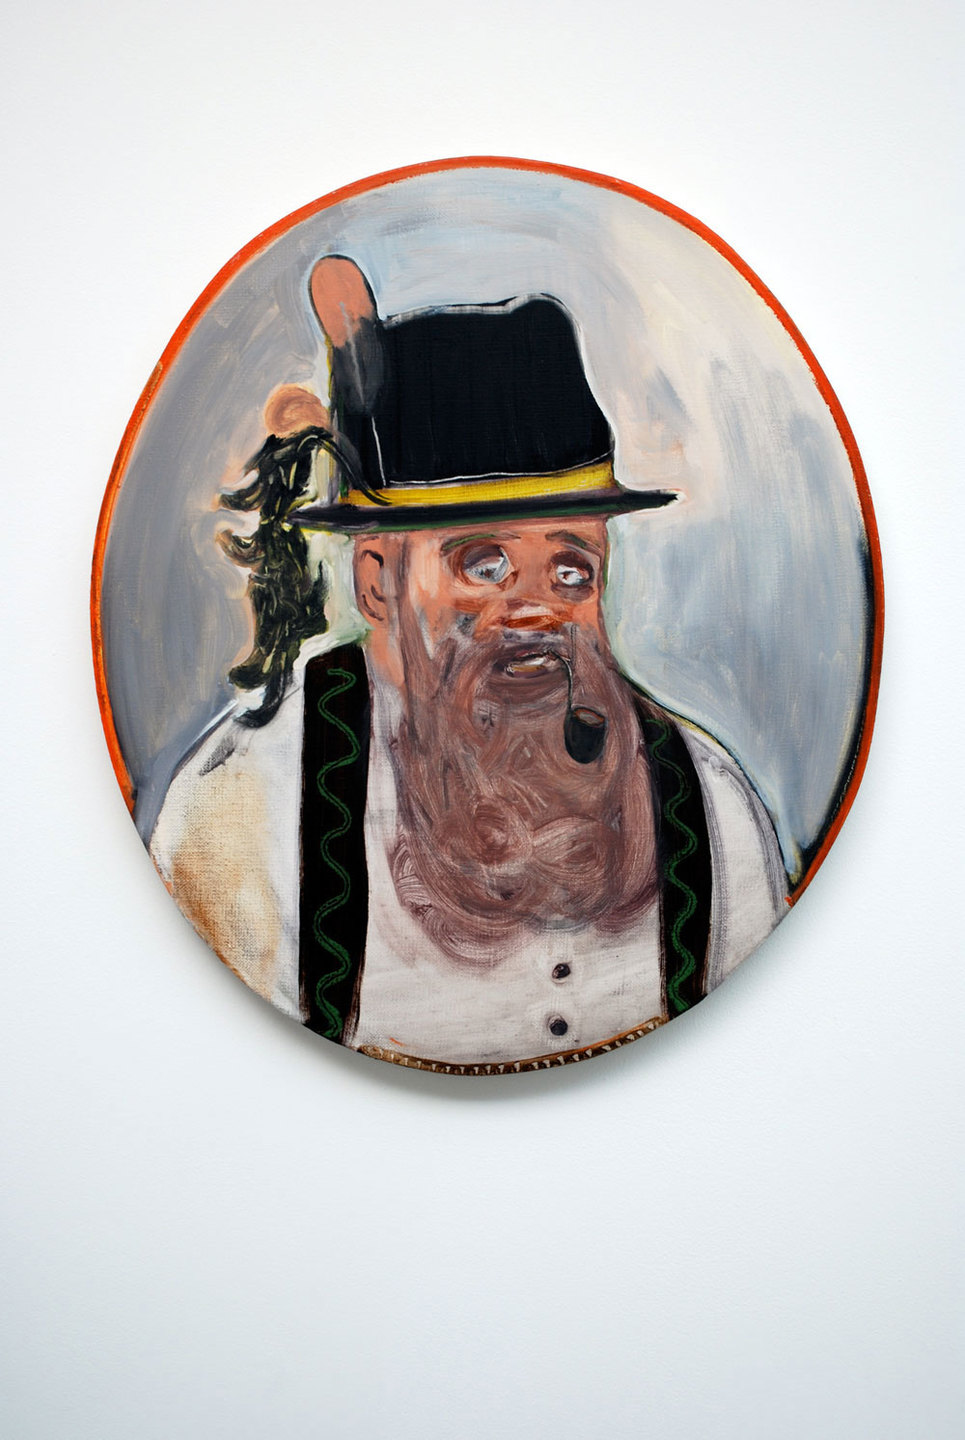 Ryan Mosley 'Tyrolean Man', 2008, 61 x 70 cm, oil on linen